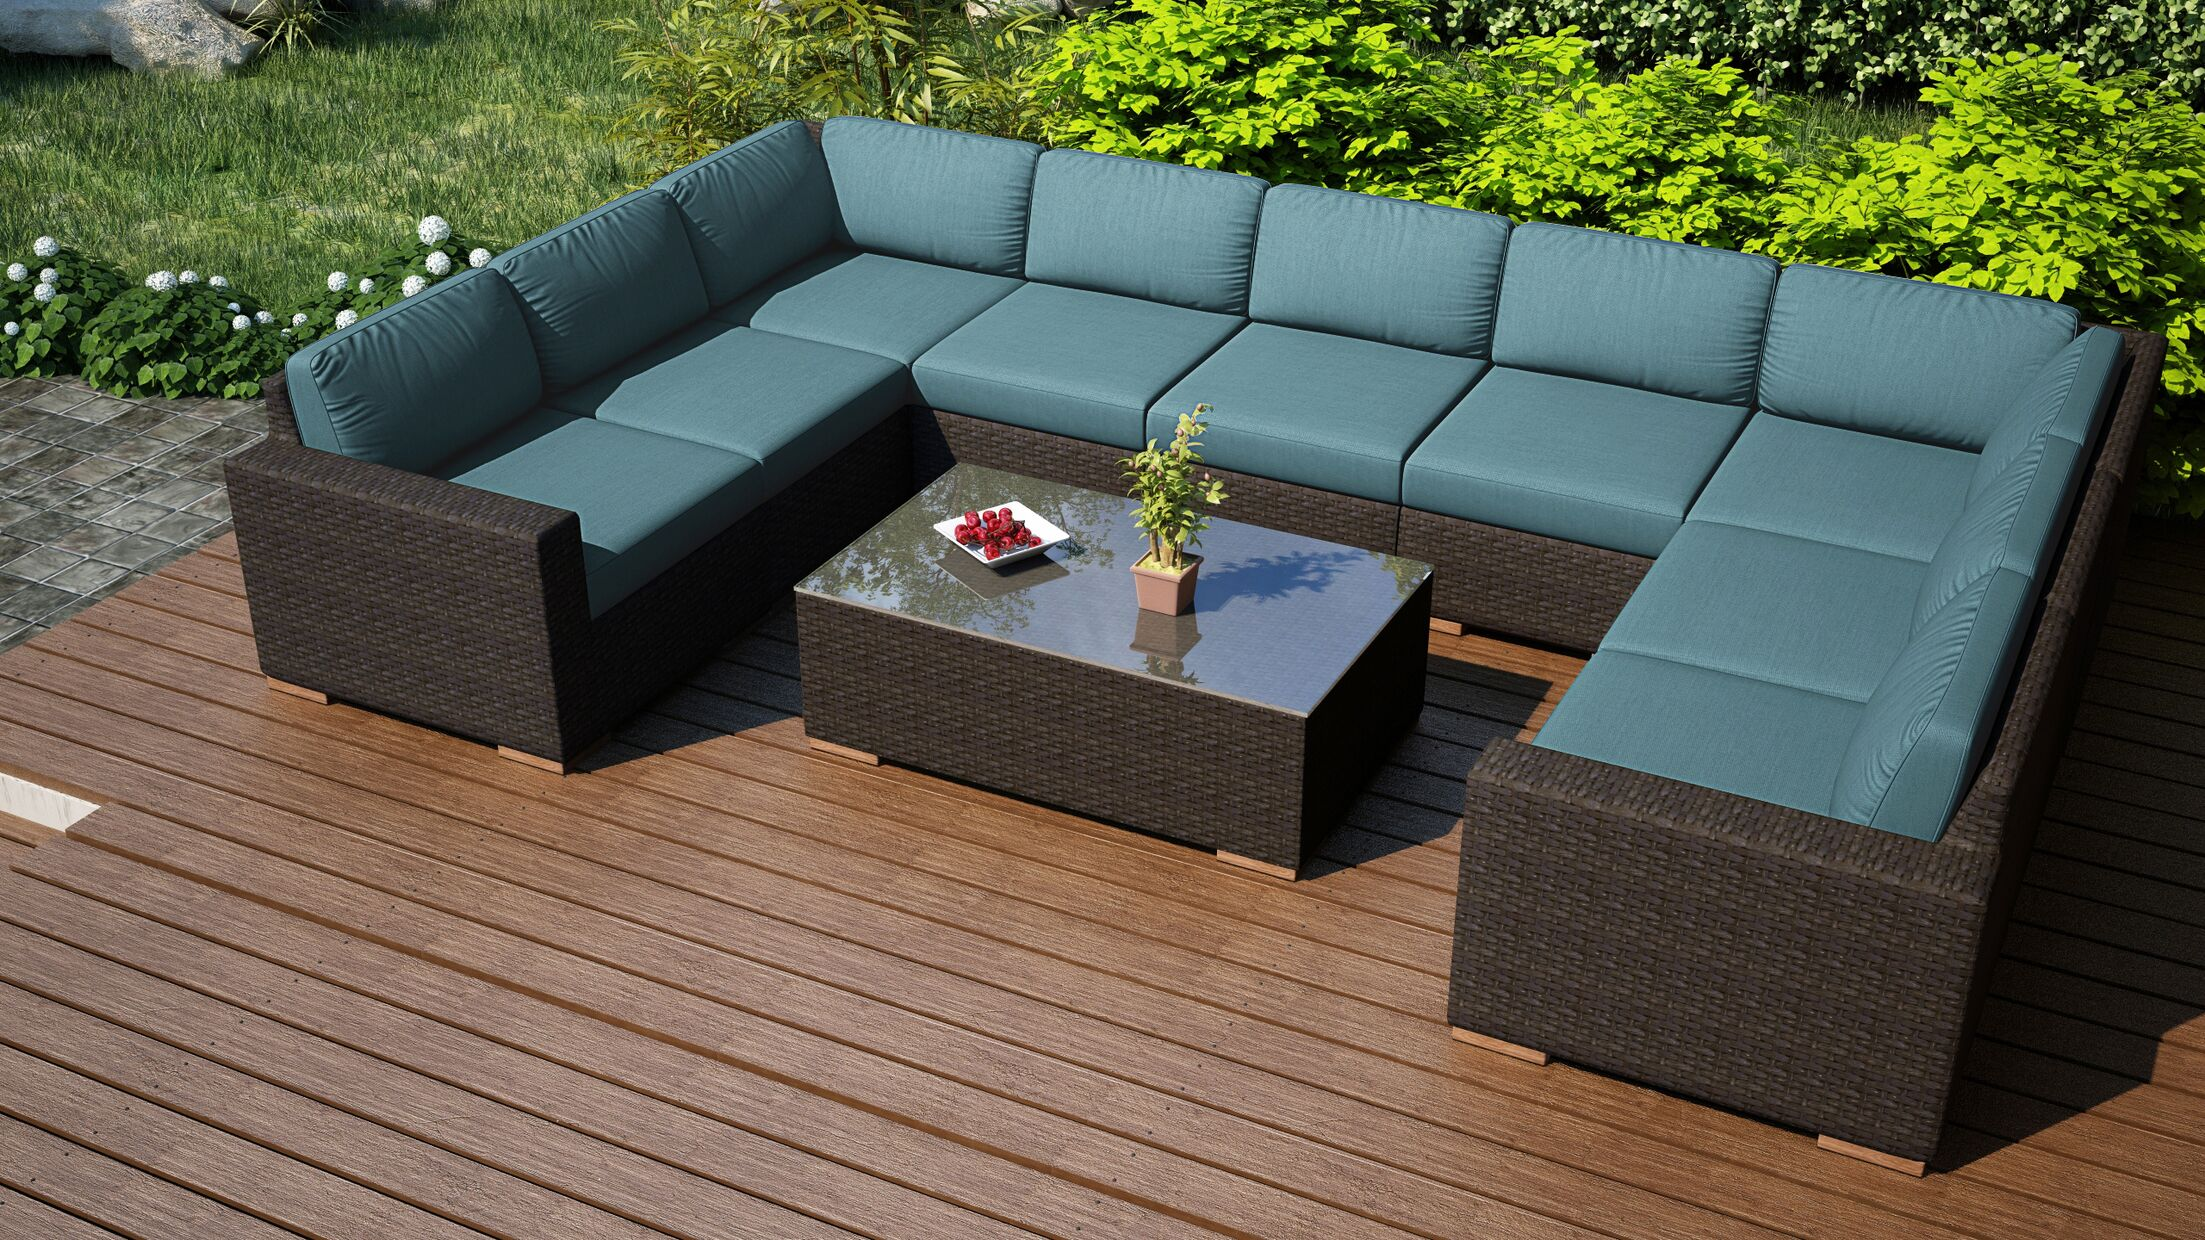 Arden 10 Piece Surround Sectional Set with Cushions Fabric: Cast Lagoon